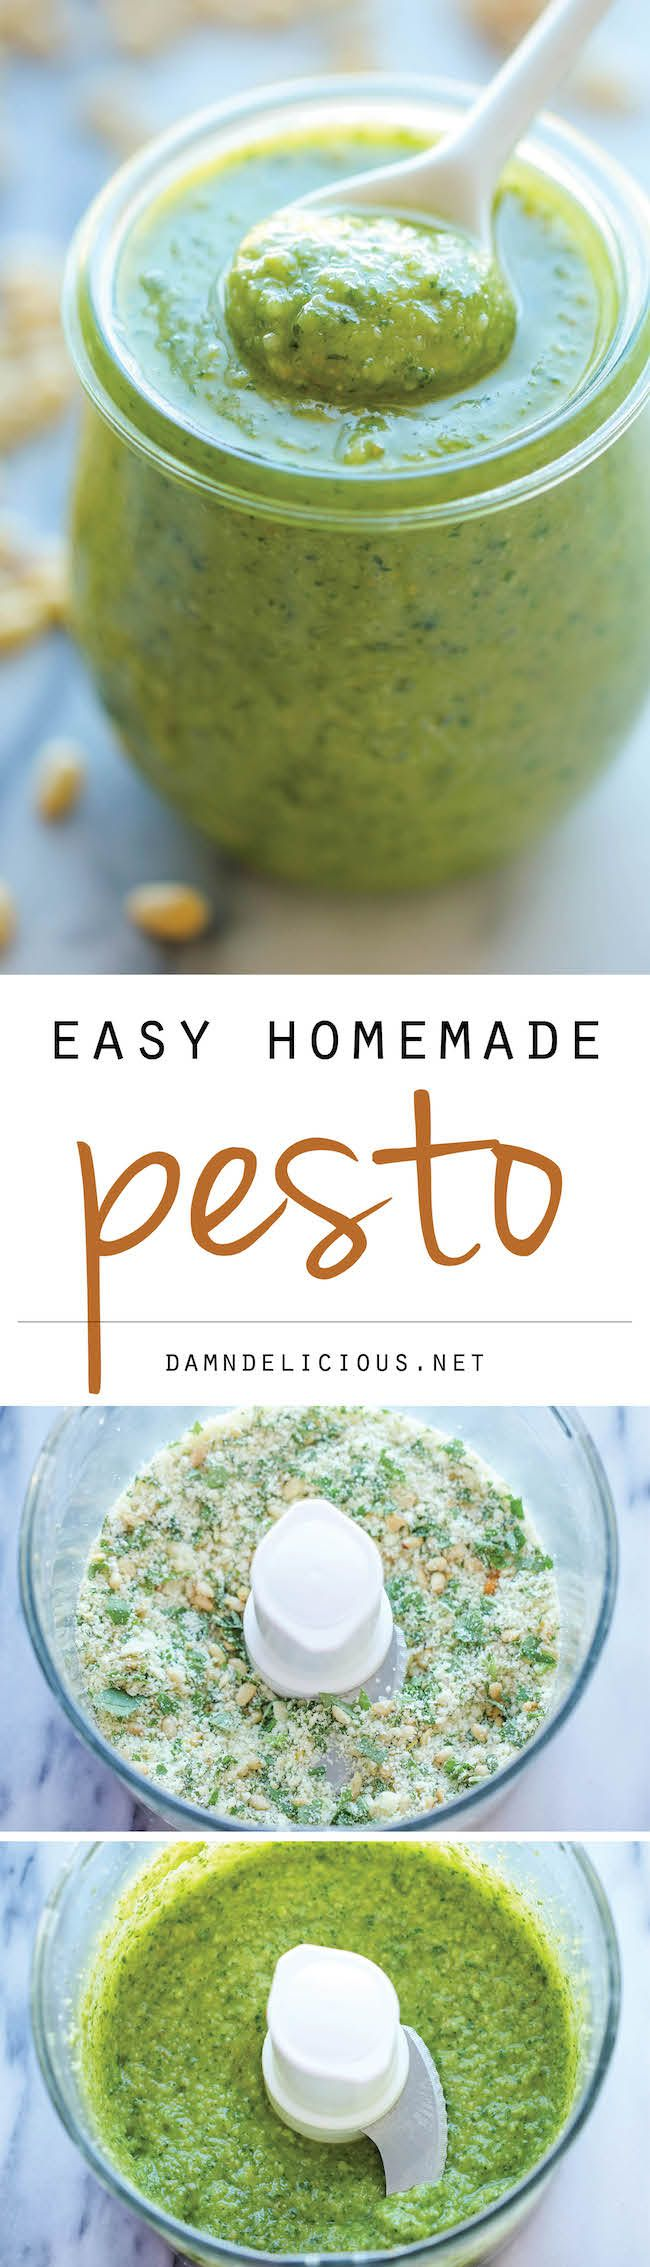 Easy Homemade Pesto - good ratios, but you should toast the pine nuts first, in my opinion